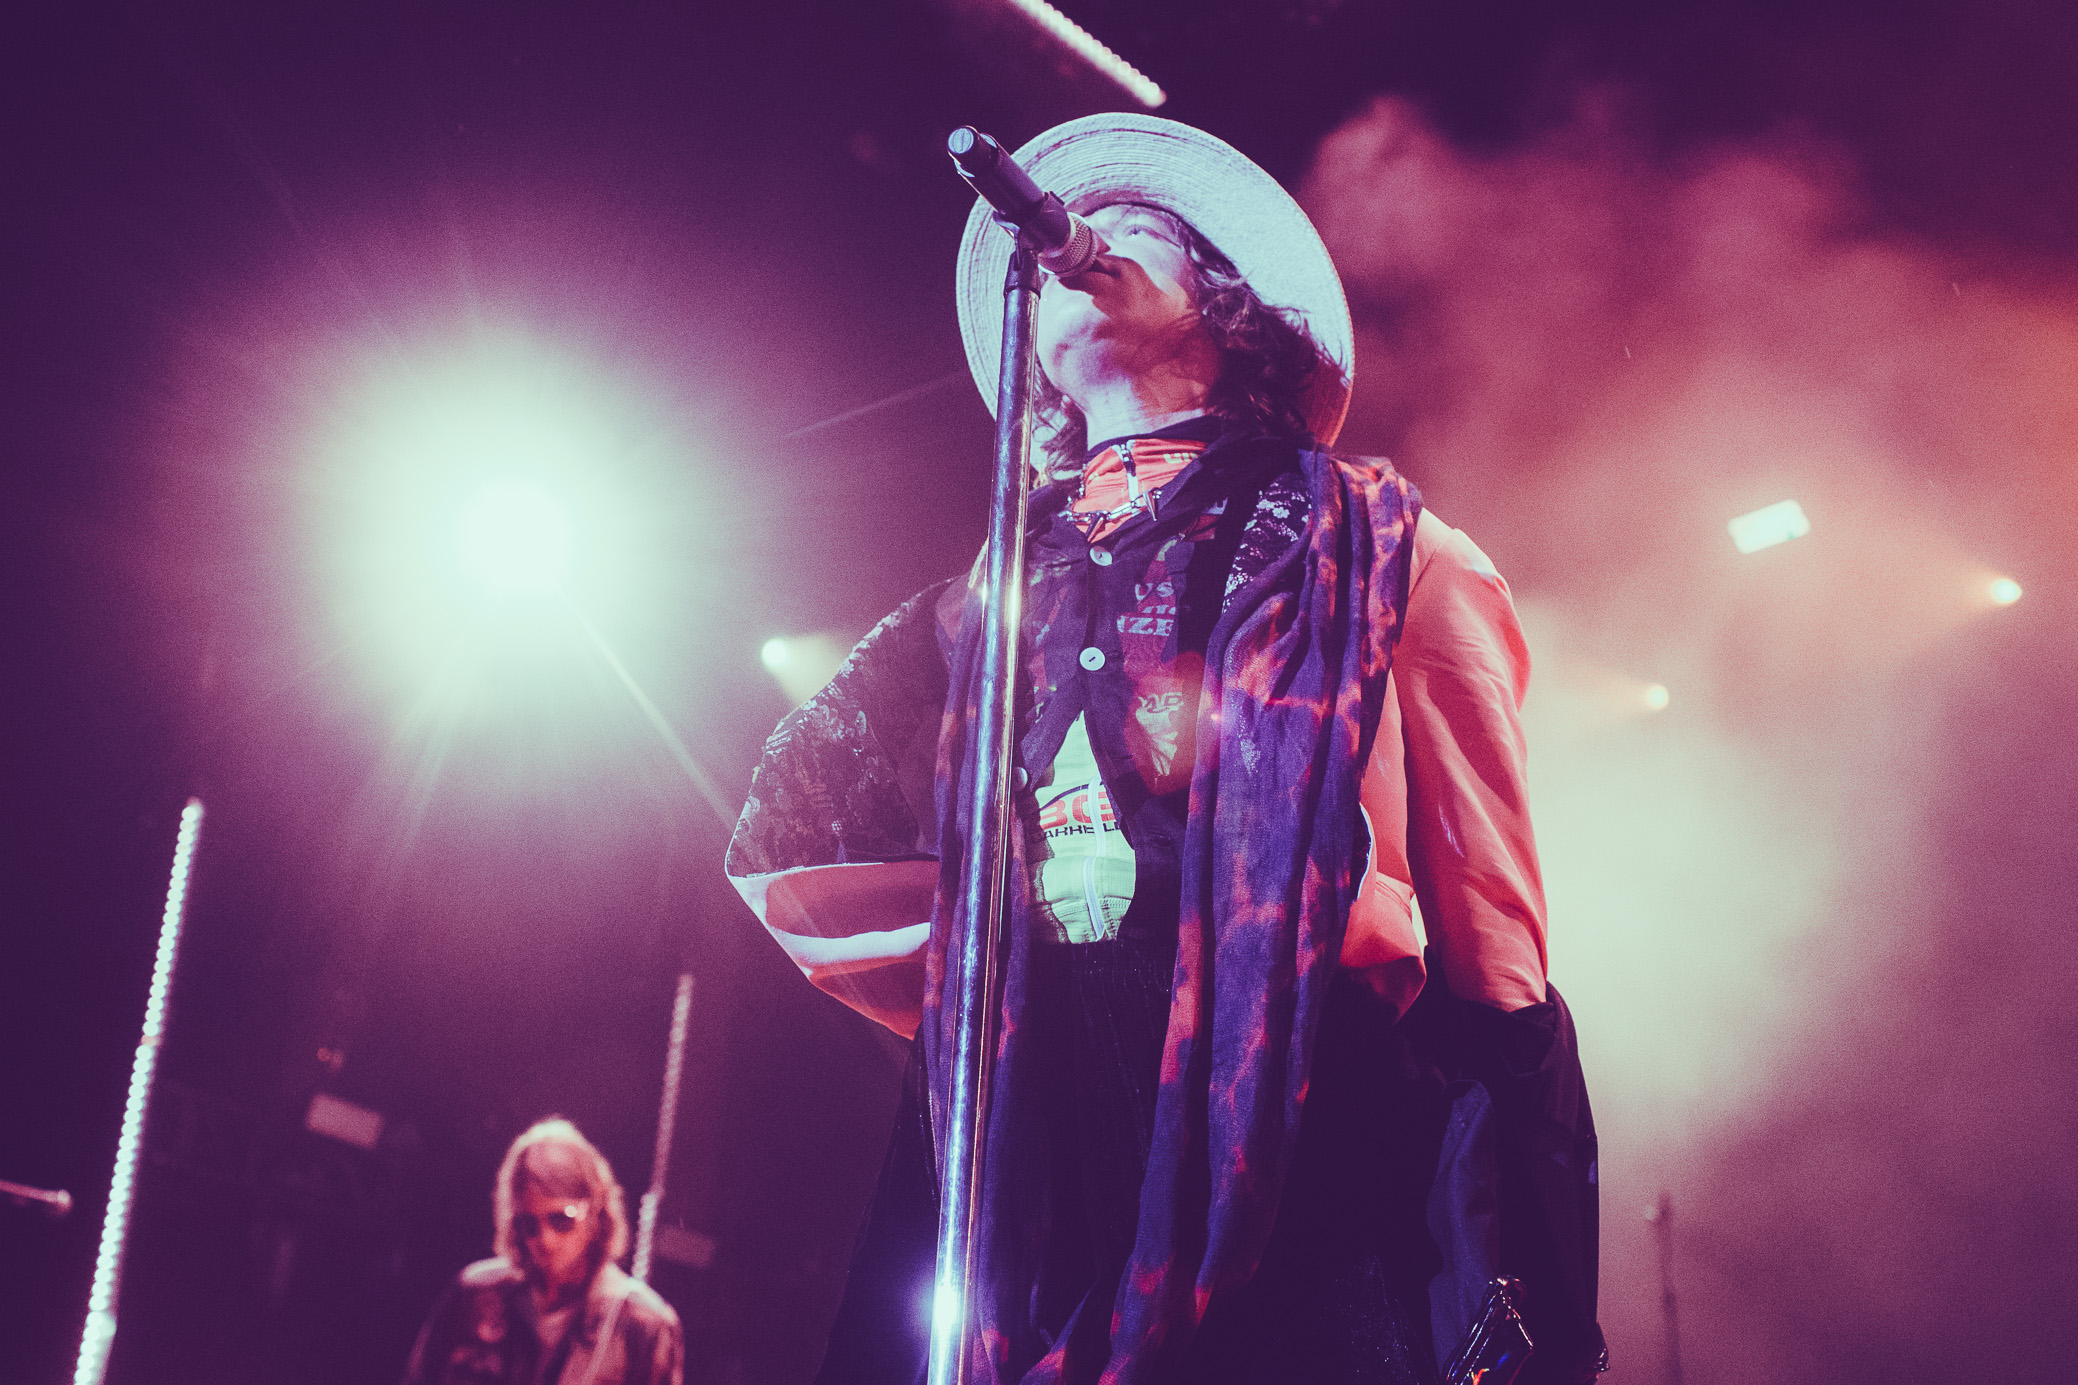 Cage the Elephant performs at the Oak Mountain Amphitheatre in Birmingham, Alabama on August 27th, 2019. (Photo by David A. Smith / DSmithScenes)